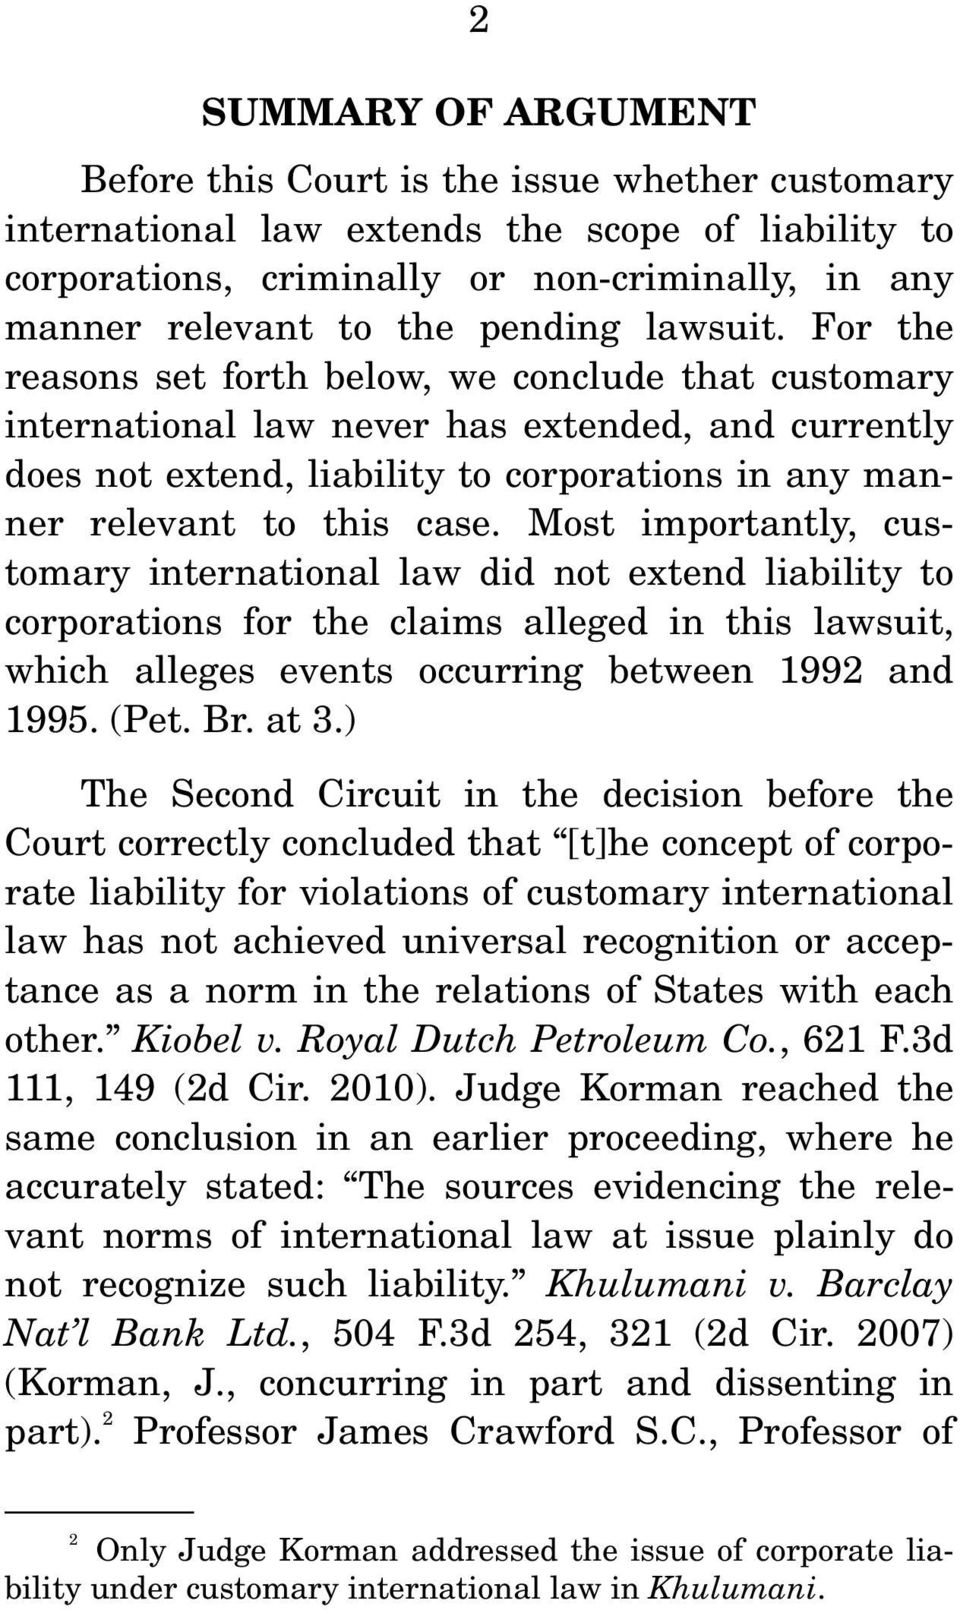 For the reasons set forth below, we conclude that customary international law never has extended, and currently does not extend, liability to corporations in any manner relevant to this case.